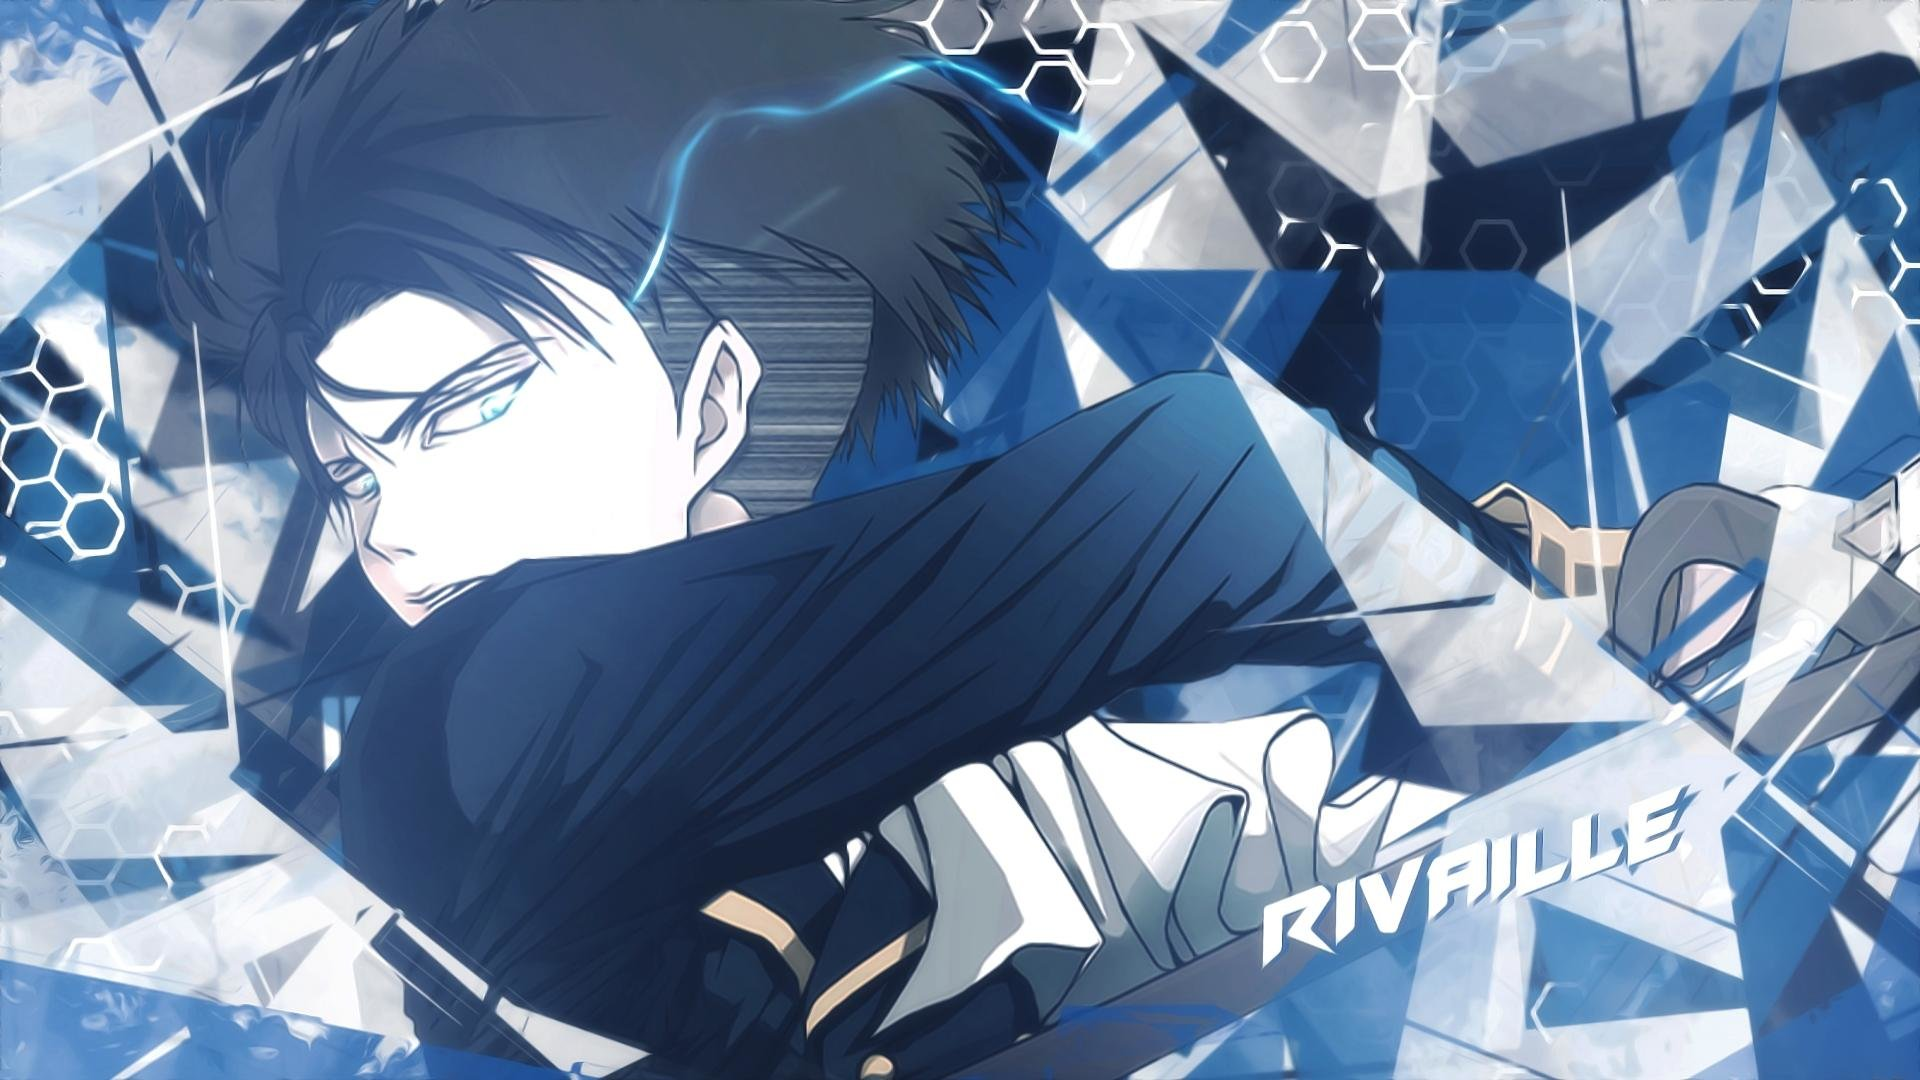 Download Hd Levi Ackerman Desktop Wallpaper Id Levi Wallpaper Hd 1920x1080 Wallpaper Teahub Io